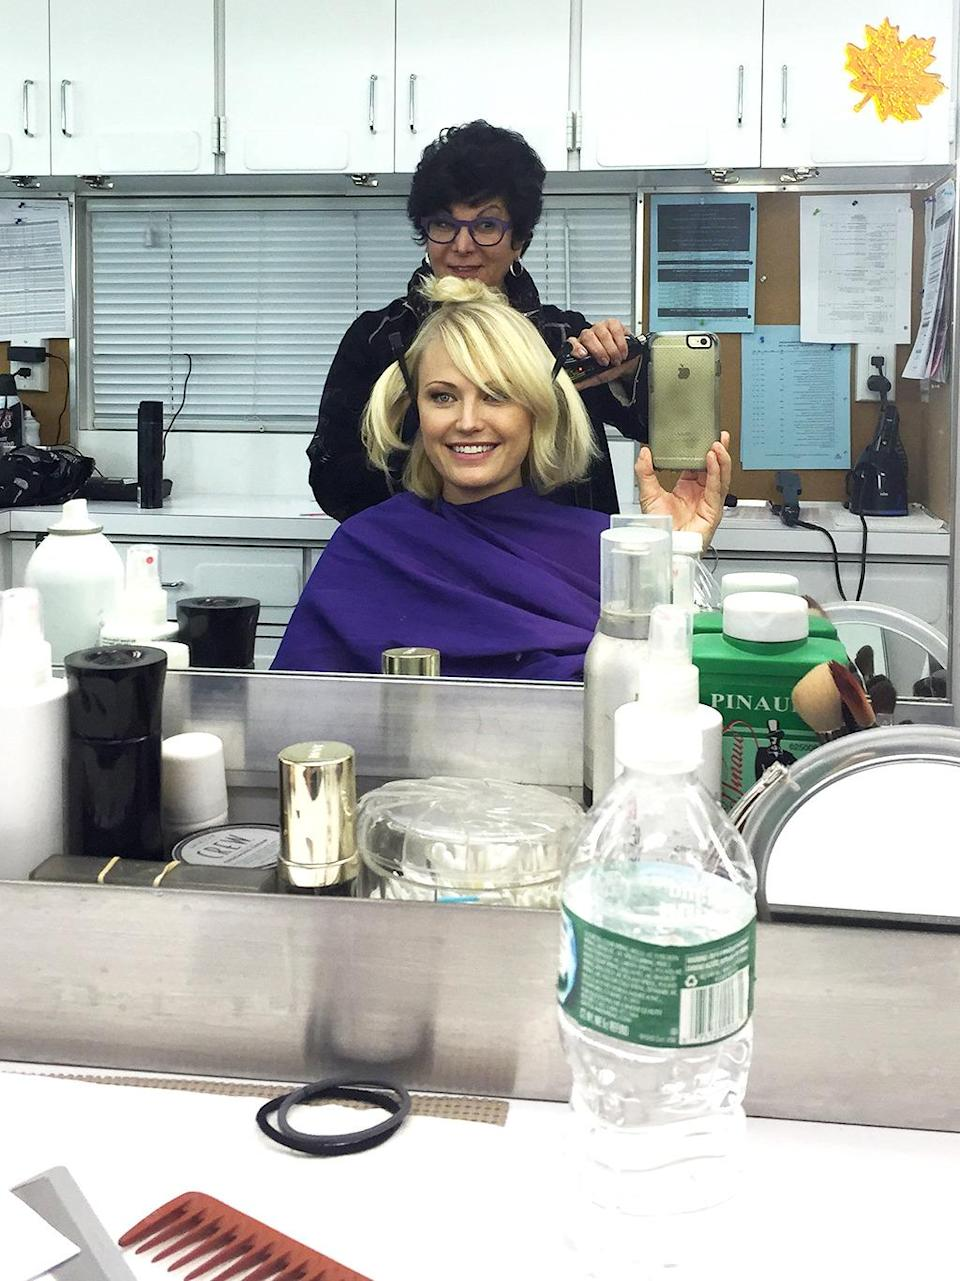 """<p>Magician number two, Francesca Paris. Pippi Longstocking? This broad is one hot tamale and one helluva hairdresser! #billions — <a href=""""https://www.instagram.com/therealmalinakerman/"""" rel=""""nofollow noopener"""" target=""""_blank"""" data-ylk=""""slk:@therealmalinakerman"""" class=""""link rapid-noclick-resp"""">@therealmalinakerman</a></p><p><i>(Credit: Instagram)</i><br></p>"""